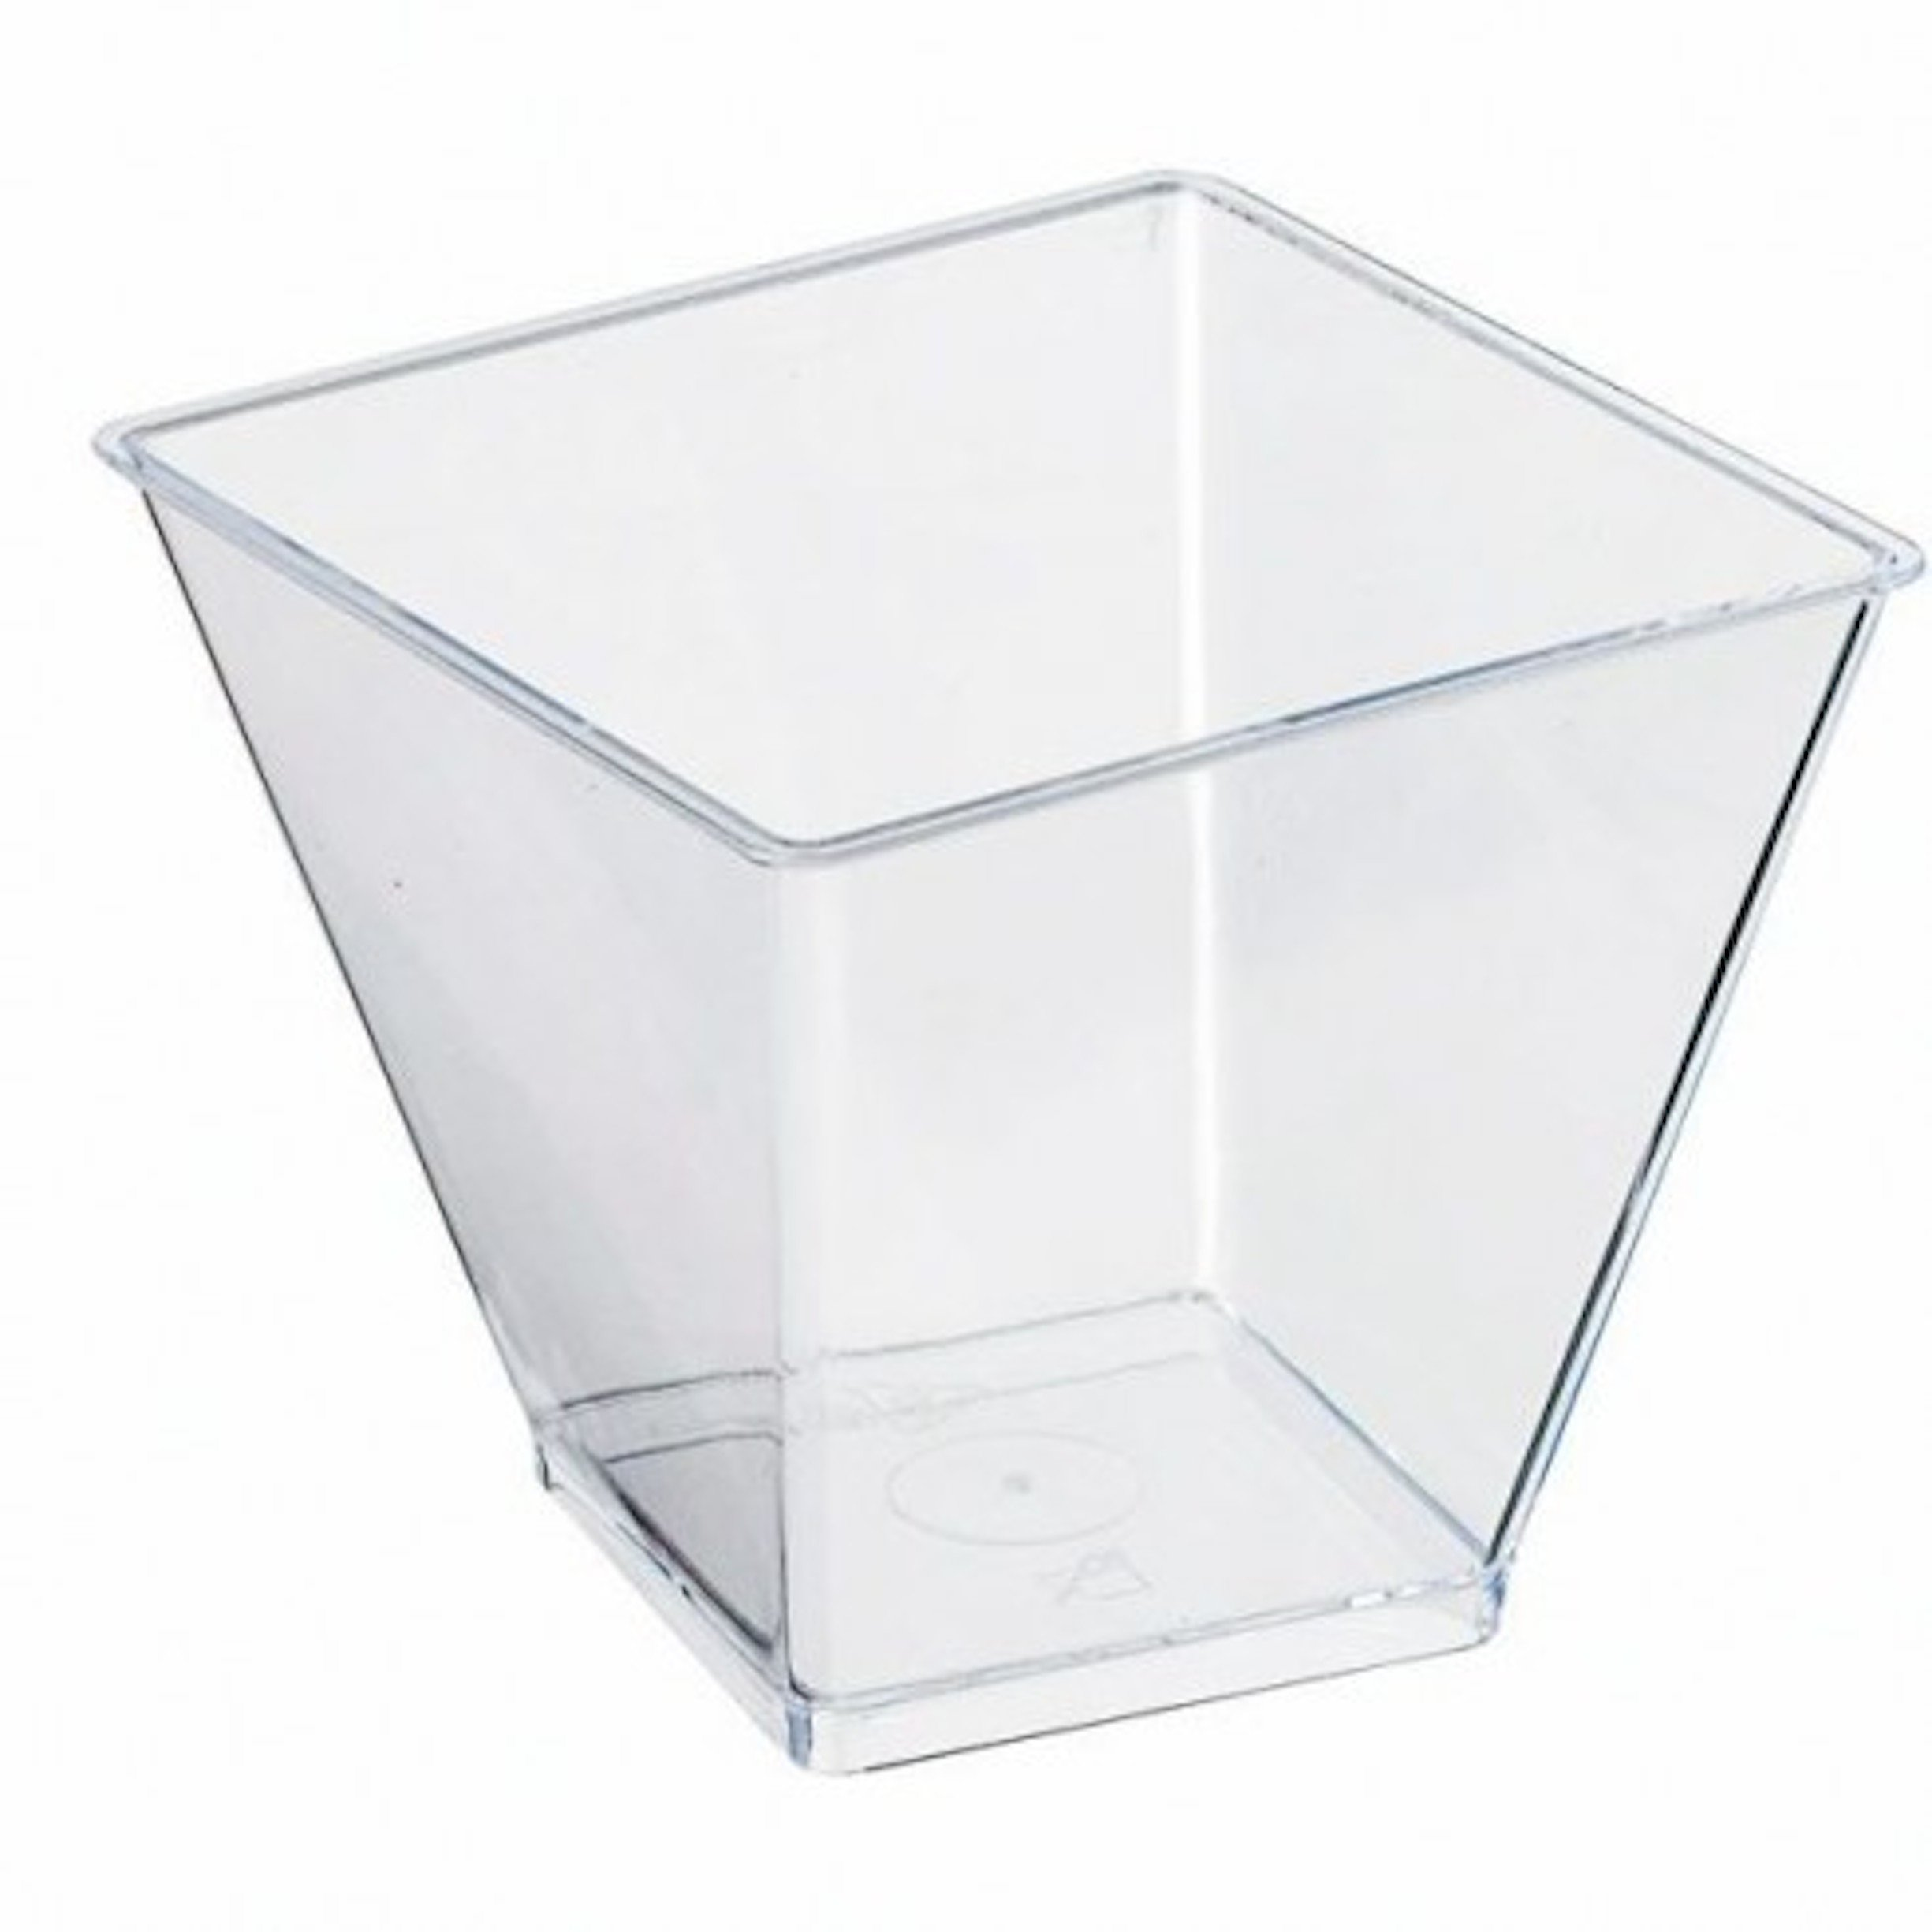 Square Clear Plastic Cup (Case of 600), PacknWood - Transparent Recyclable Plastic Bulk Case of Cups (3.3 oz, Top 2.4'' x 2.4'', Bottom 1.5'' x 1.5'') 209MBZENO10 by PacknWood (Image #2)